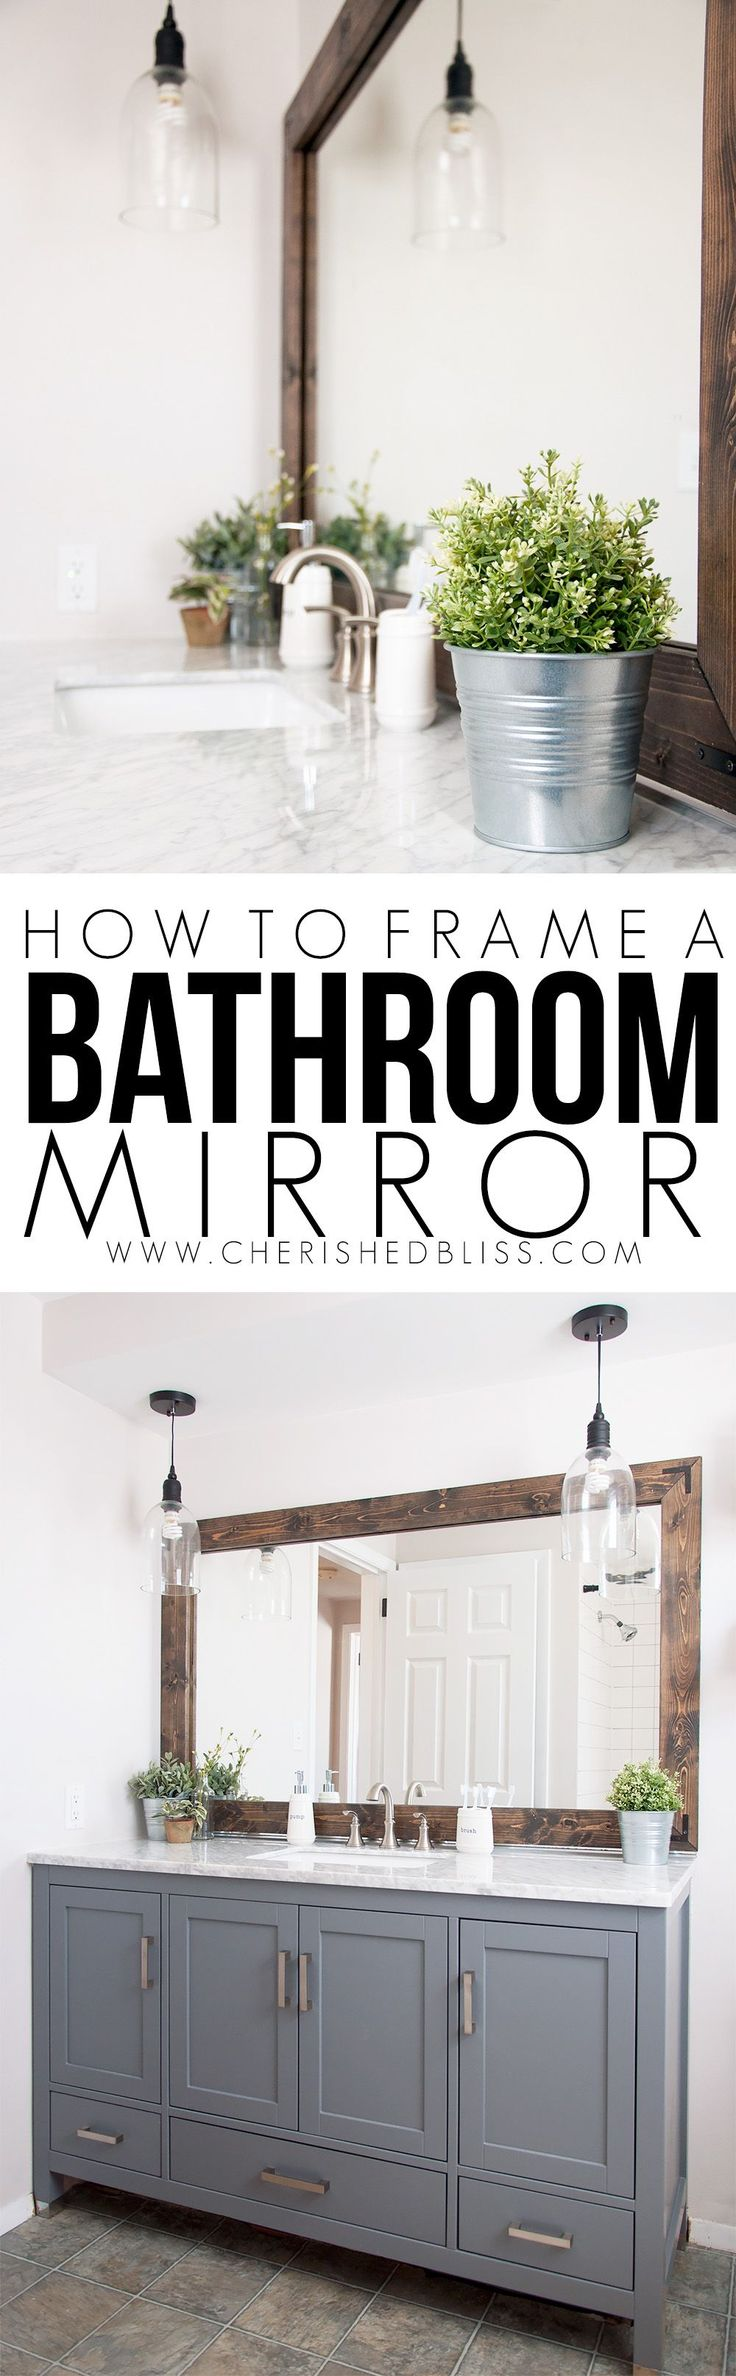 Framed mirror bathroom - How To Frame A Bathroom Mirror